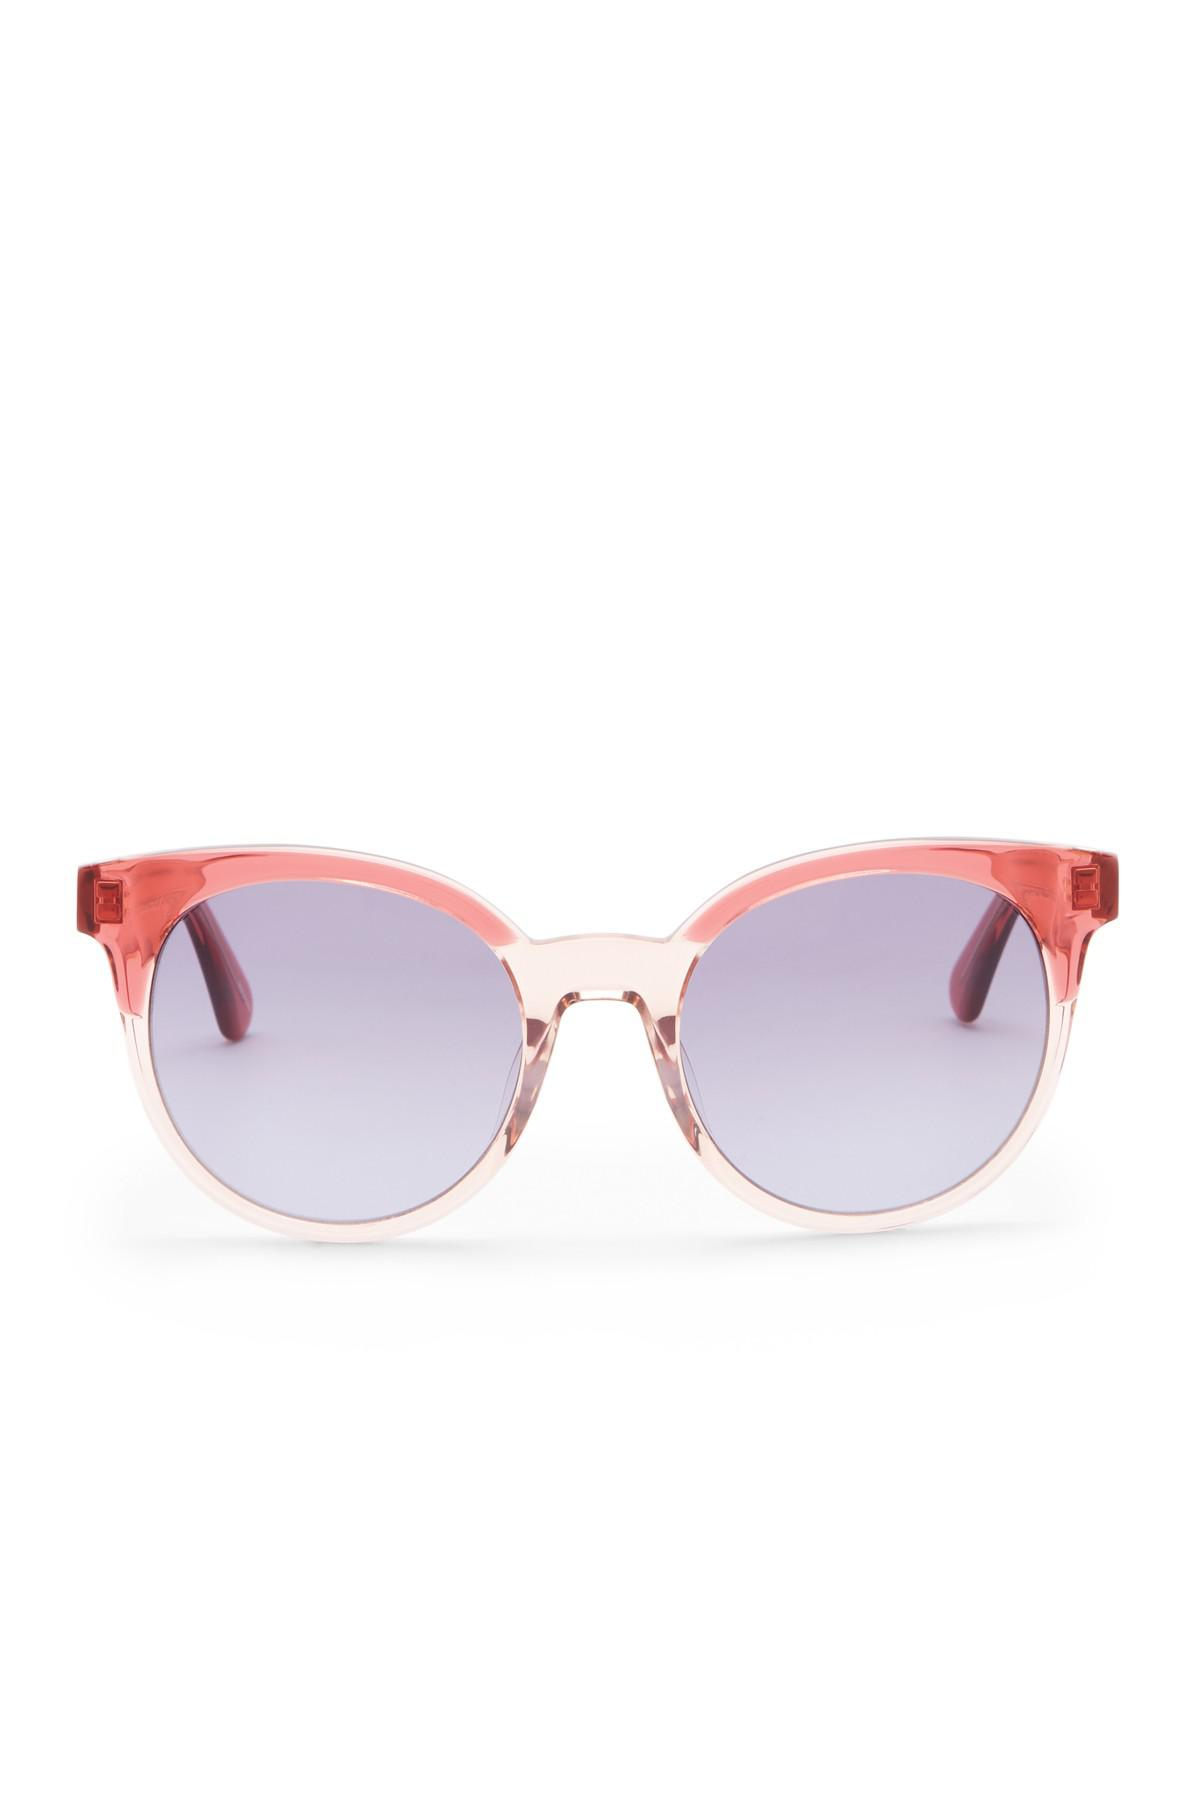 538bc034f8 Kate Spade - Multicolor Abianne 51mm Round Sunglasses - Lyst. View  fullscreen